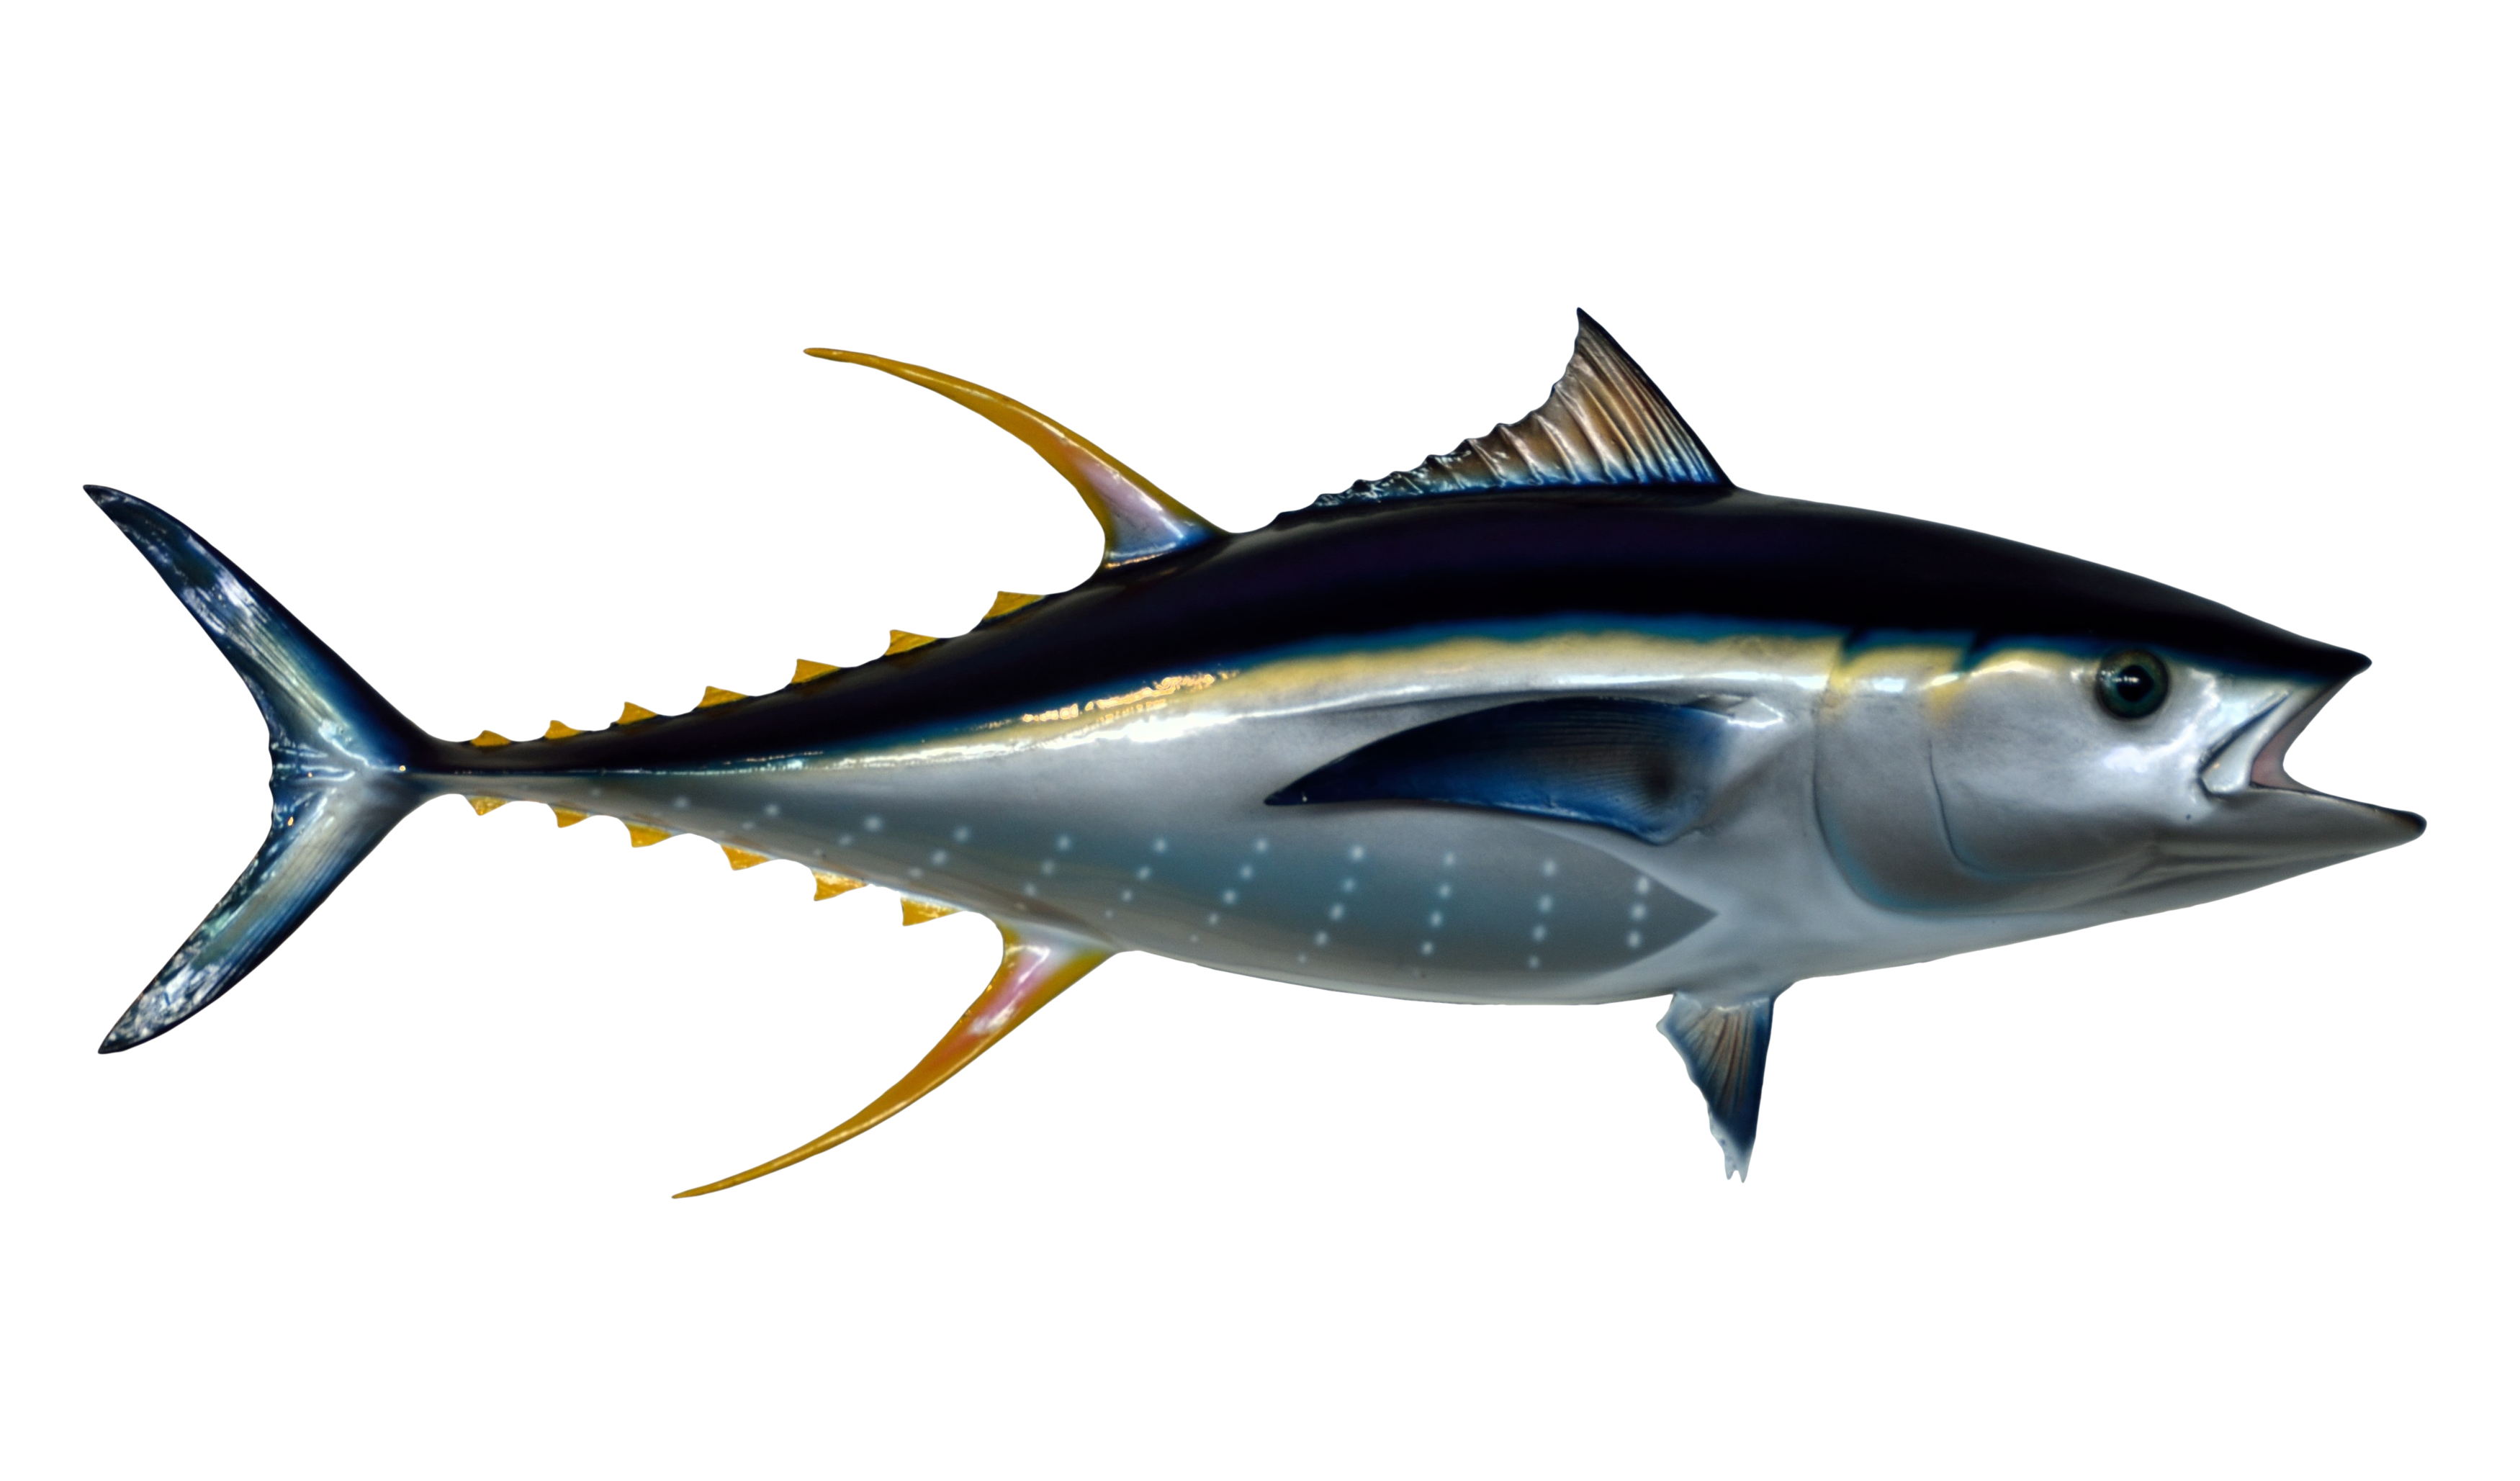 Tuna fish clipart clipart freeuse library Tuna Fish PNG Image - PurePNG | Free transparent CC0 PNG Image Library clipart freeuse library